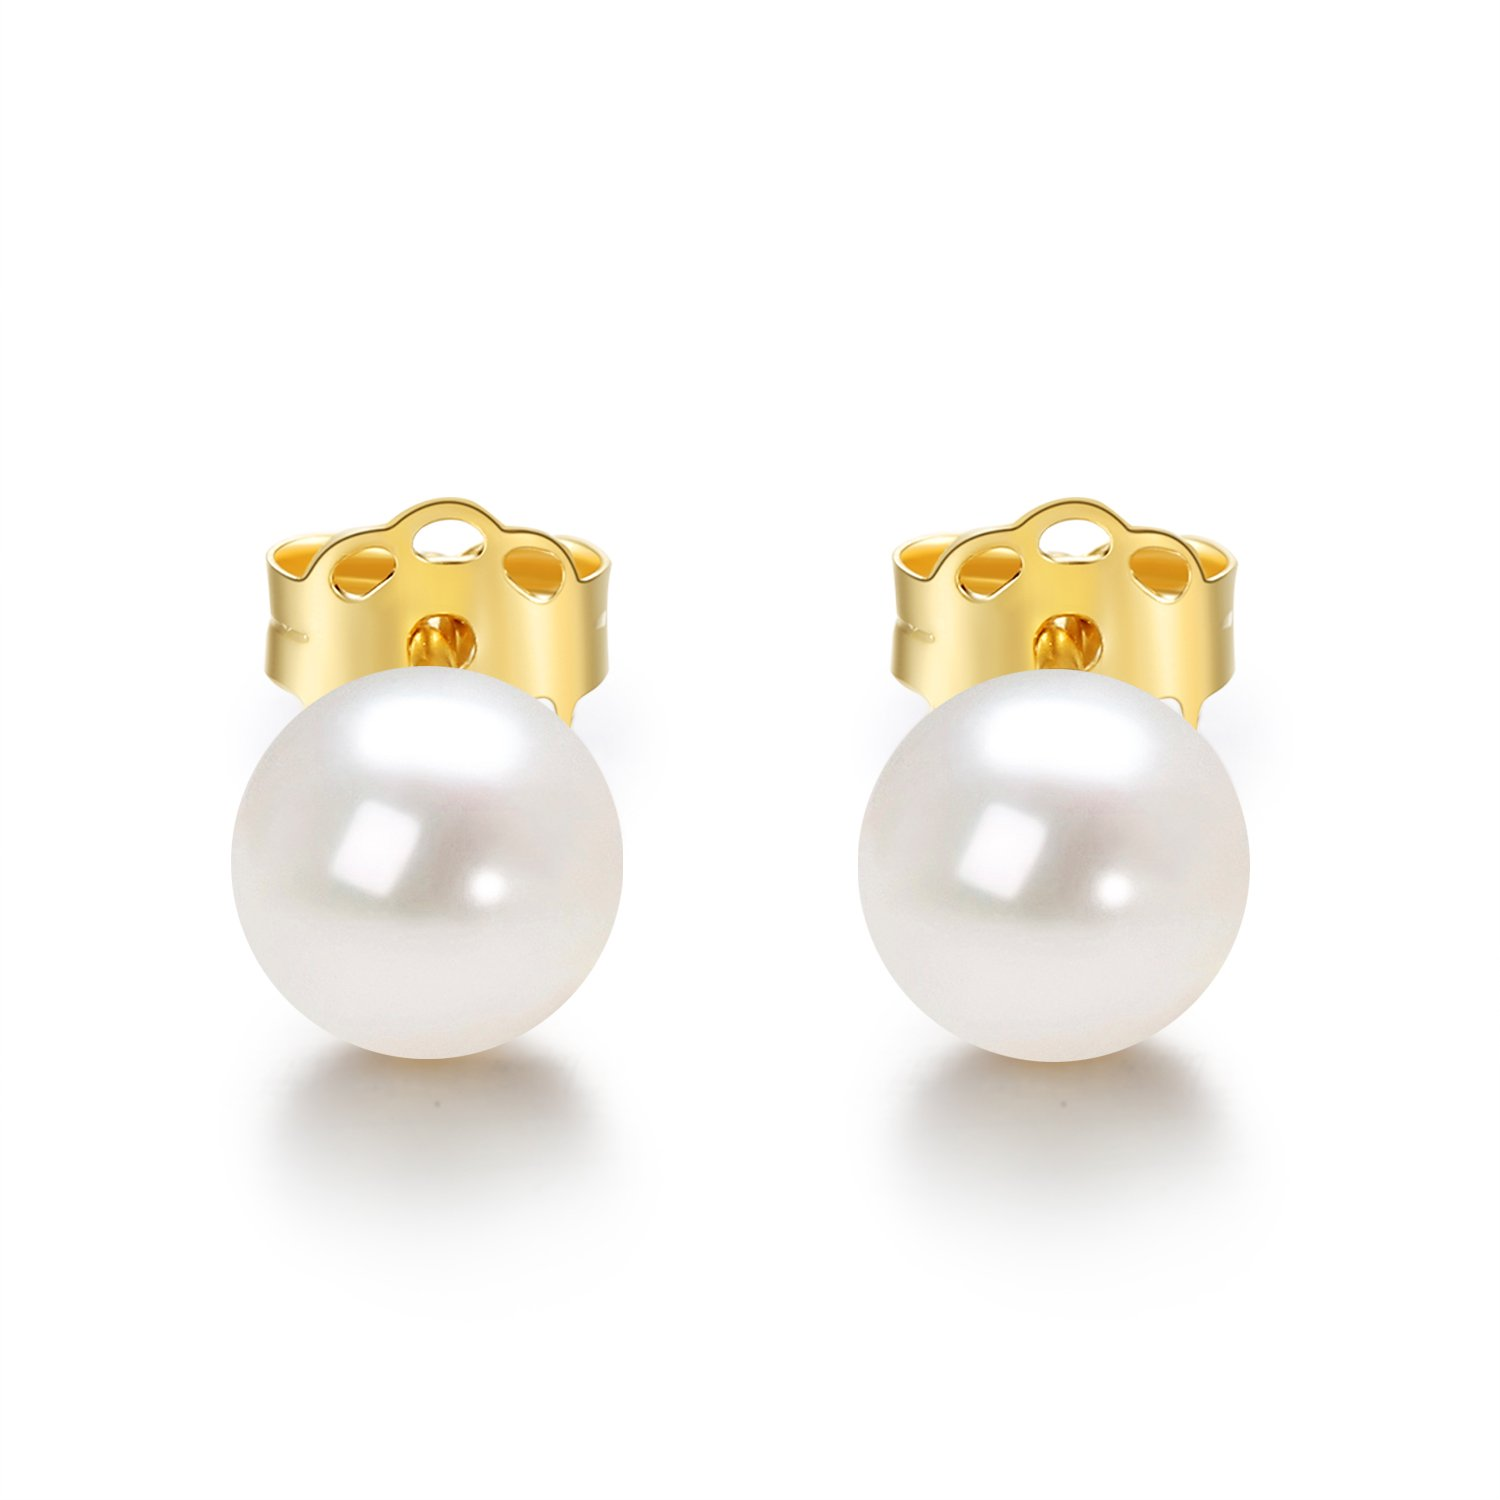 14K Gold AAA+ Handpicked Round Freshwater Cultured White Pearl Stud Earrings for Women Girls (yellow-gold, 5.5-6mm) by JORA (Image #5)